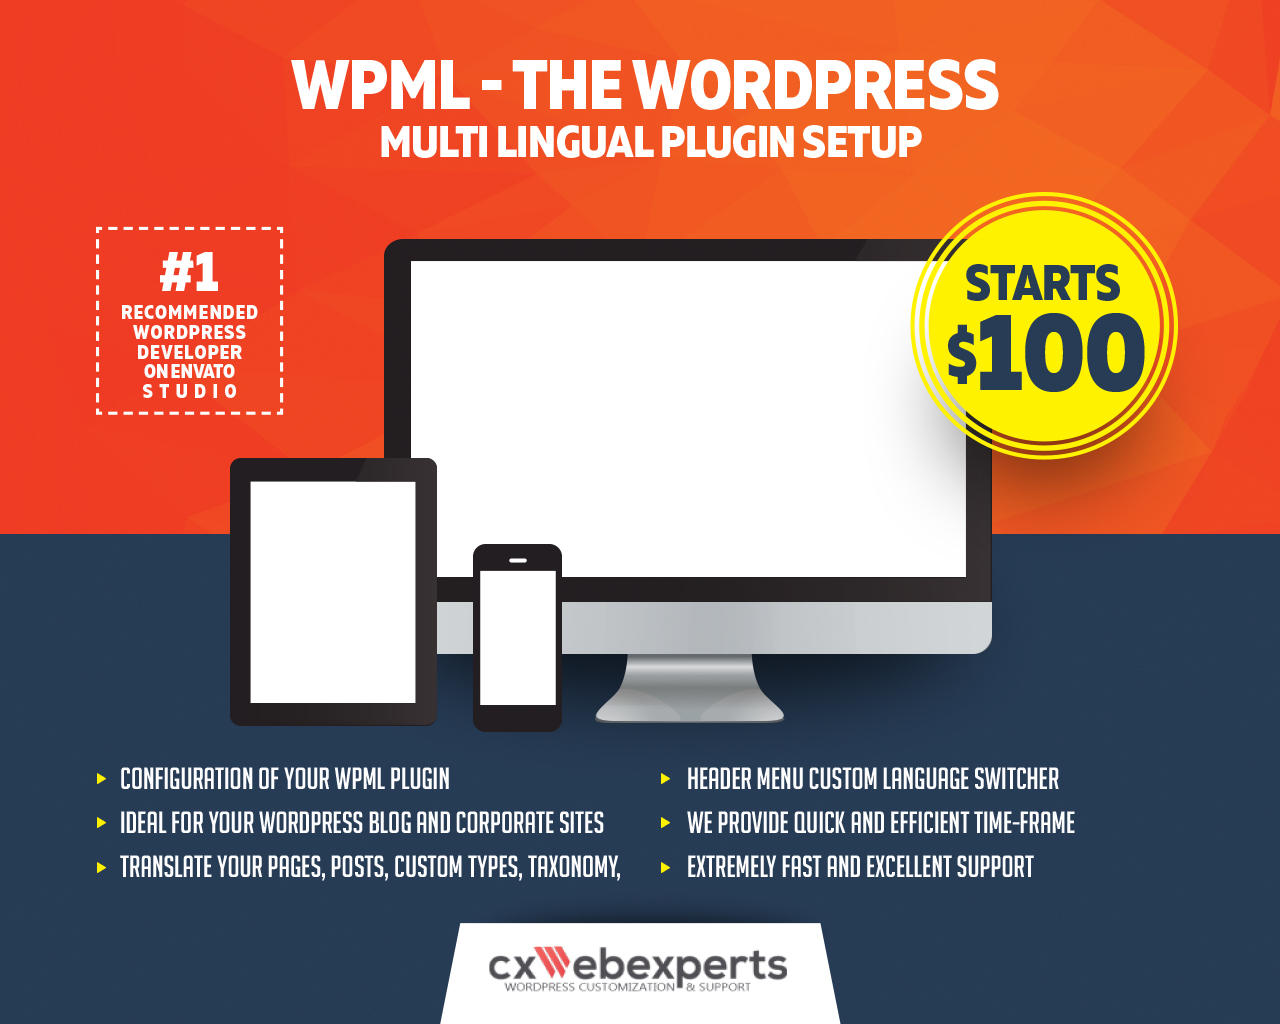 WPML Setup, Lanquage Switcher, WordPress Customization, The WordPress Multi Lingual Plugin Setup, Ch by CXWebExperts - 108185